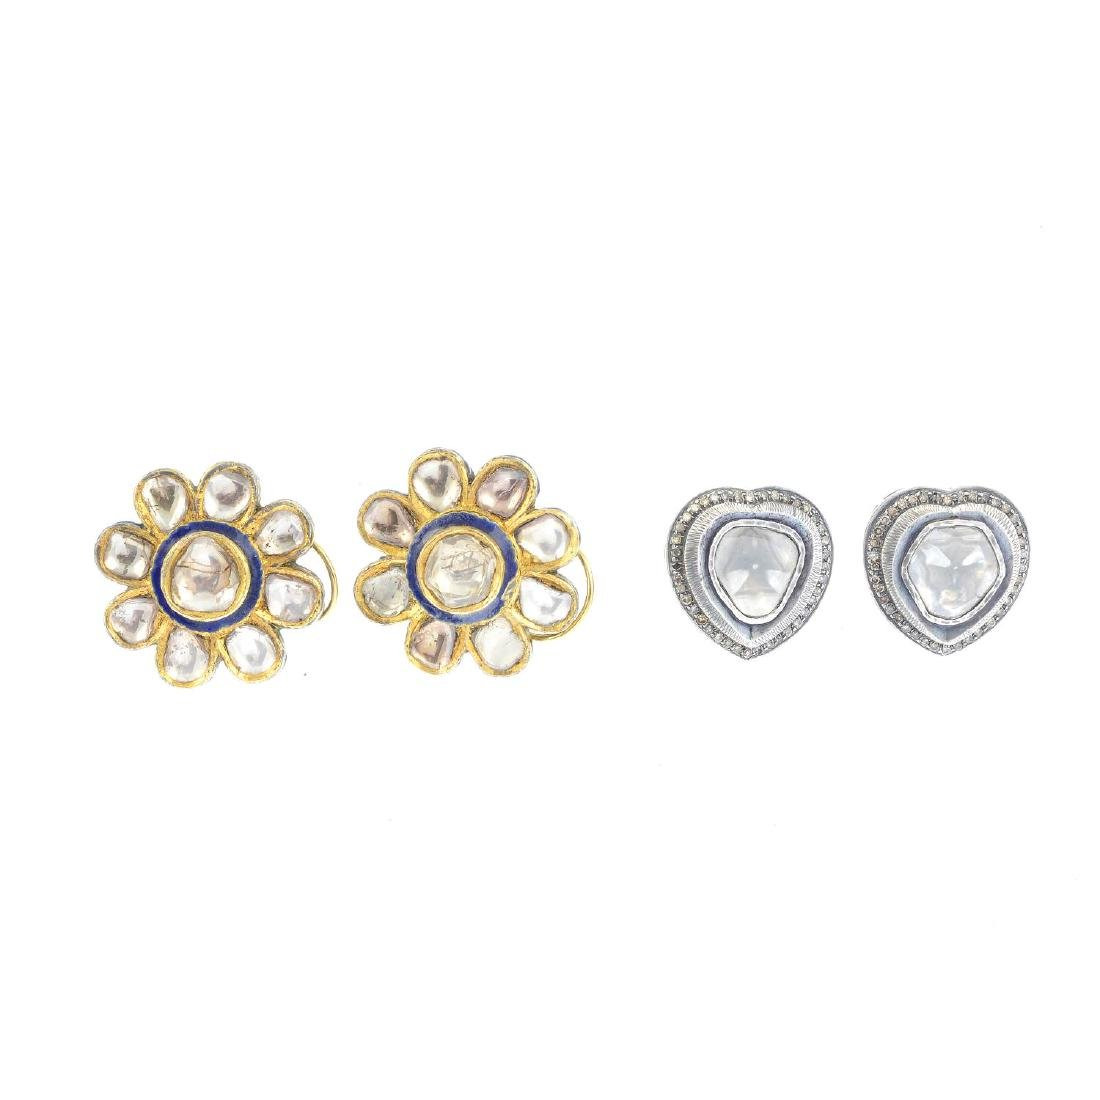 (206296) Two pairs of diamond earrings. The first pair